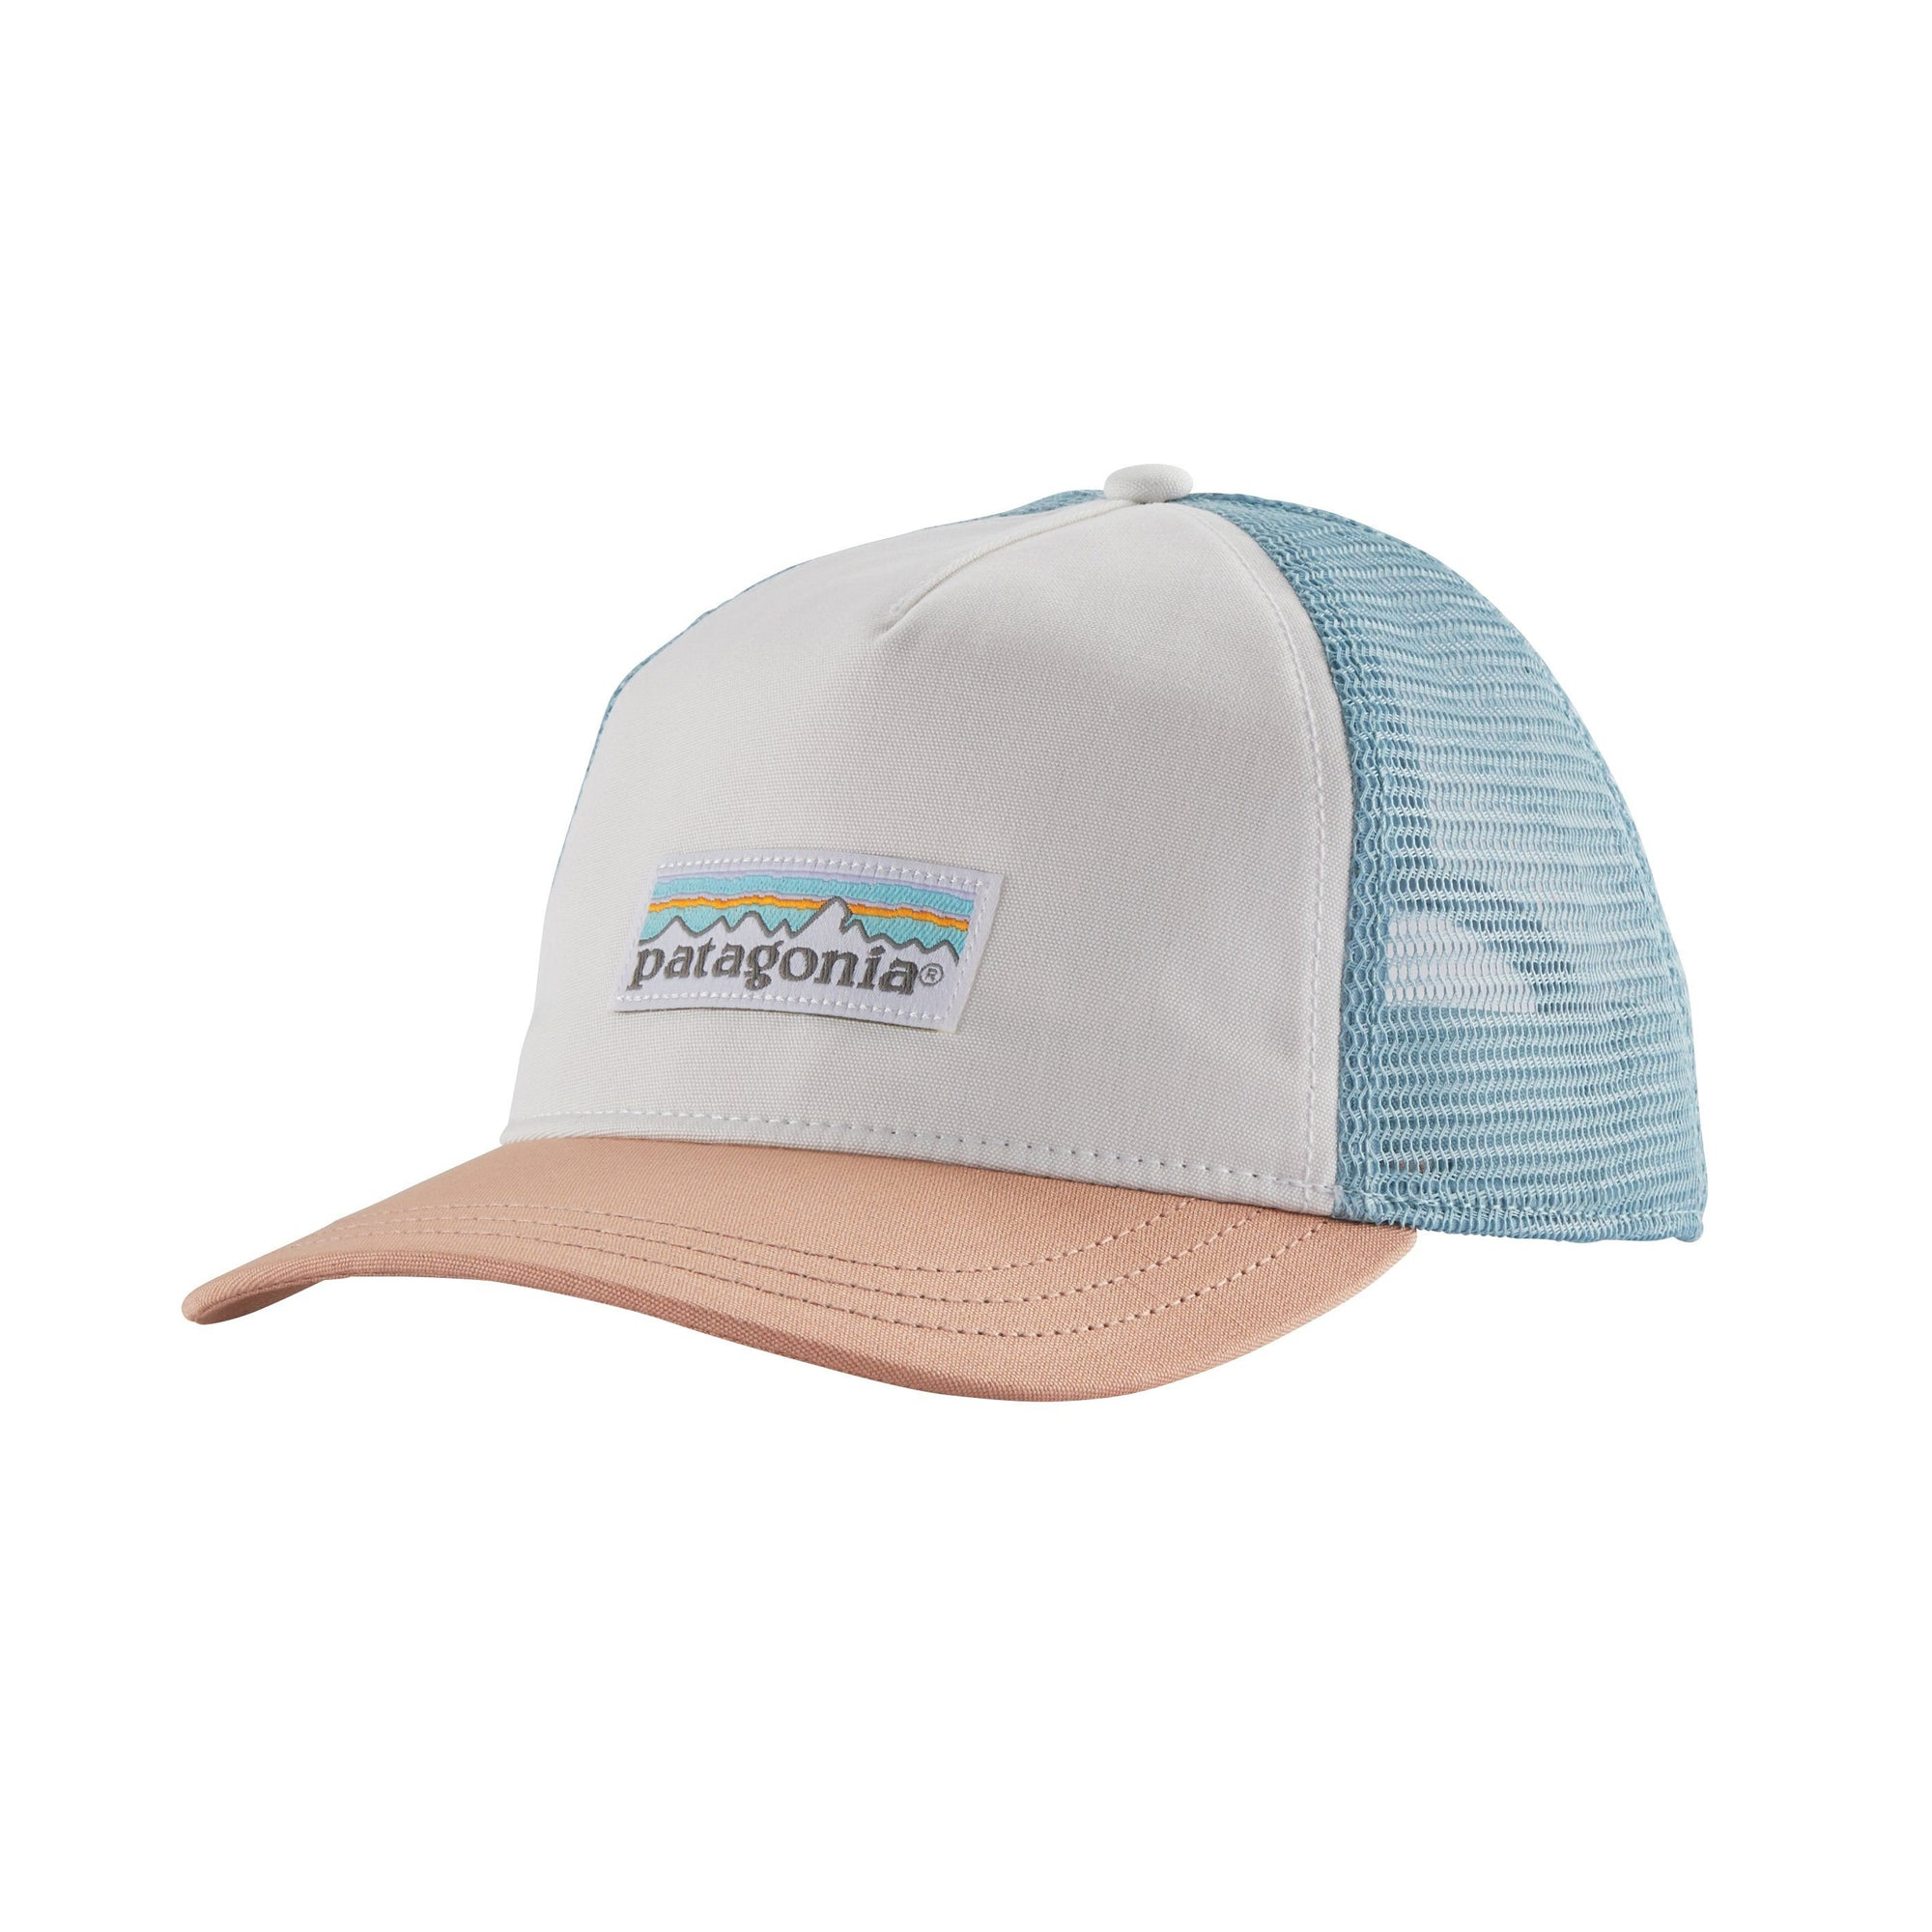 Patagonia - W's Pastel P-6 Label Layback Trucker Hat - Organic Cotton - Weekendbee - sustainable sportswear